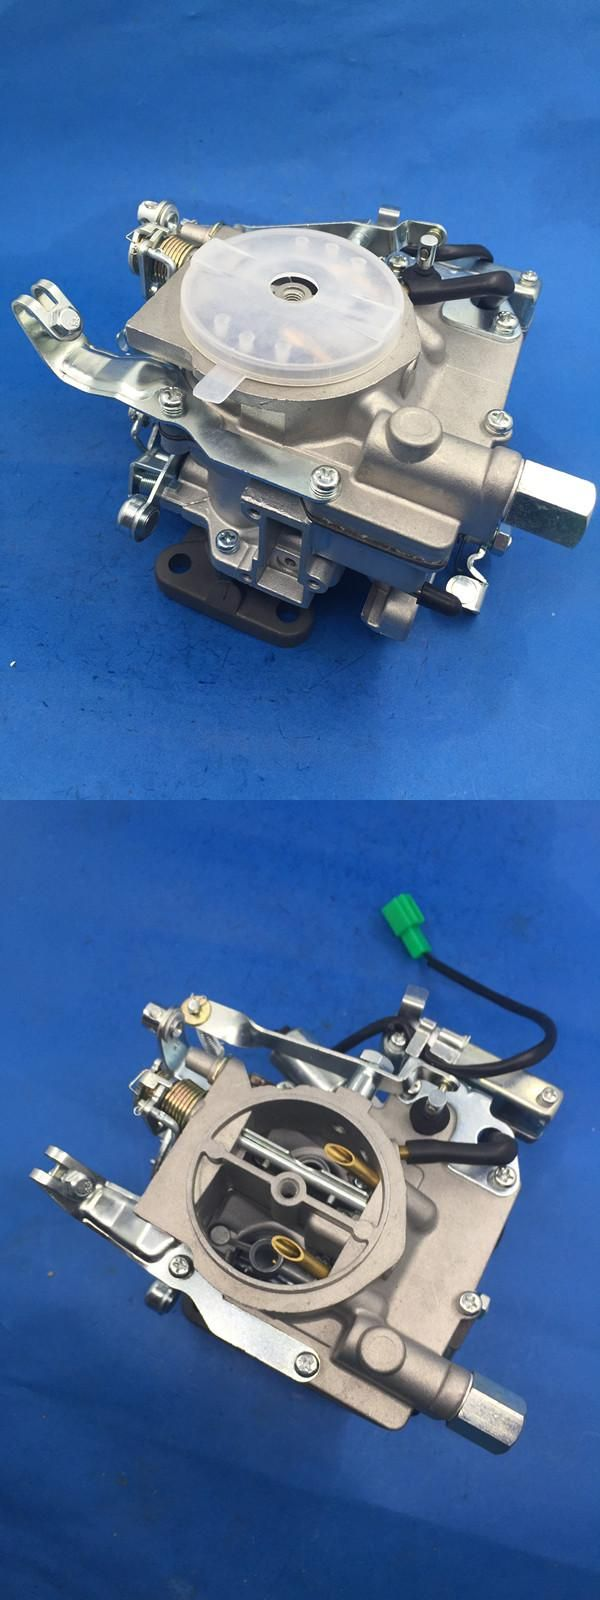 [Visit to Buy] For Mazda 3 M3 2003 2004 2005 2006 2007 2008 2009 2010 AT MT Mechanical Accelerator Brake Clutch Pedal Pedales Stickers #Advertisement